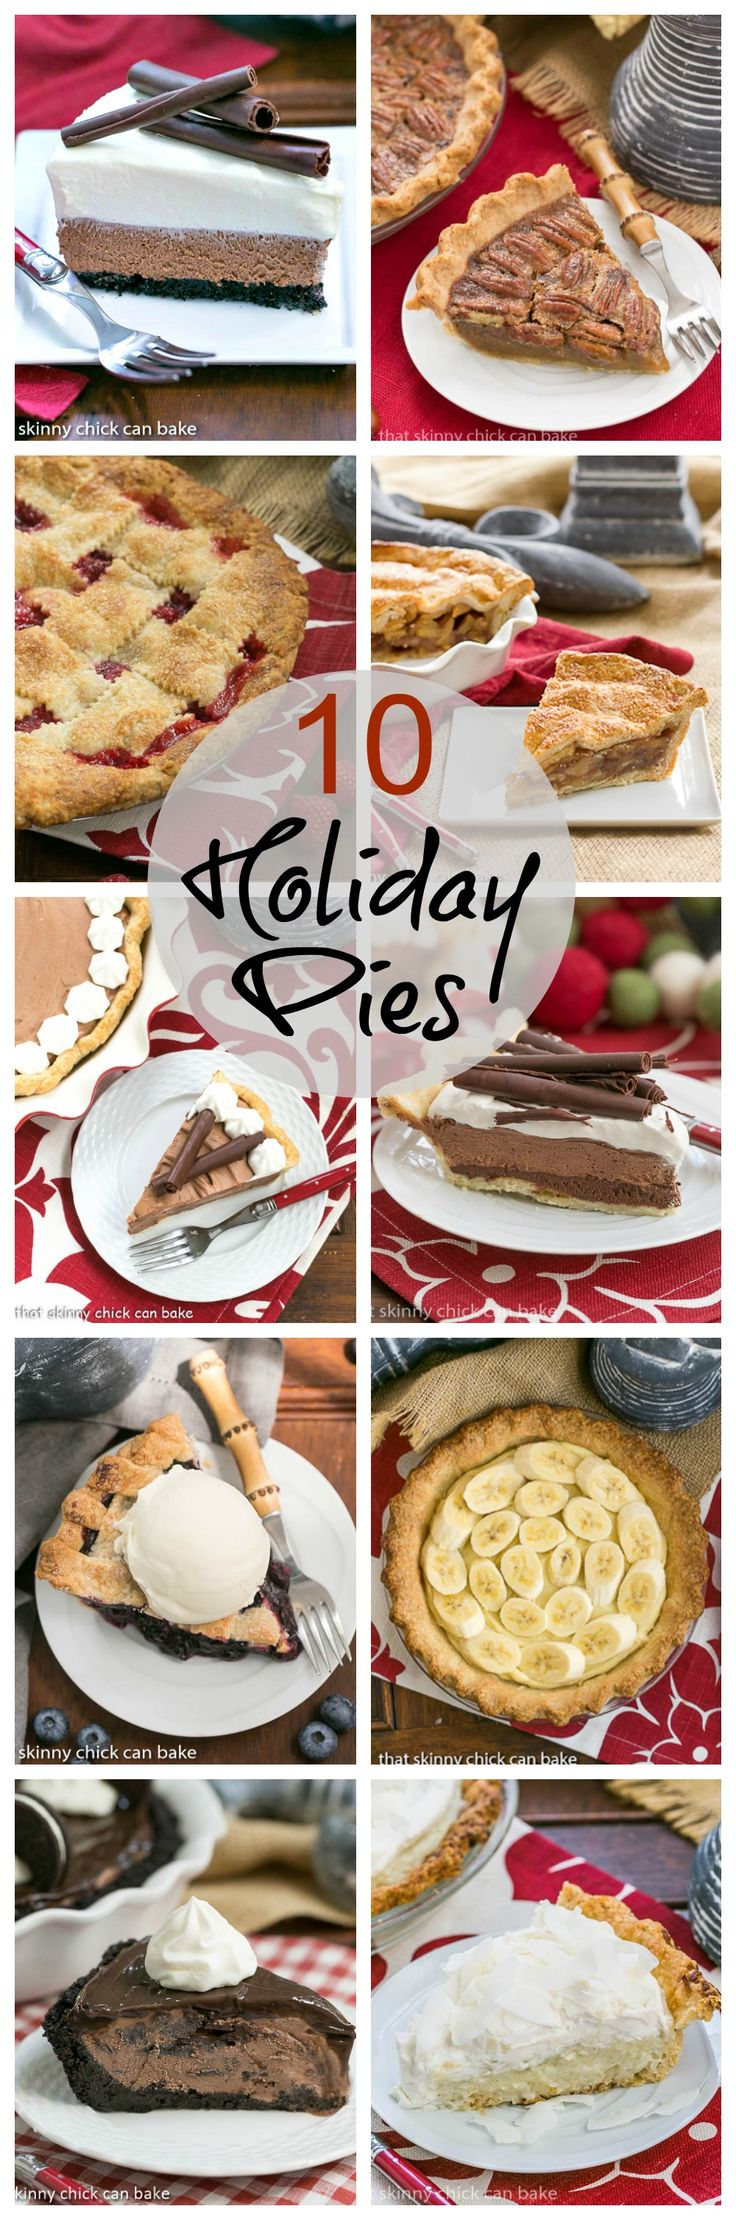 10 Holiday Pies   Delicious, irresistible pies for every occasion